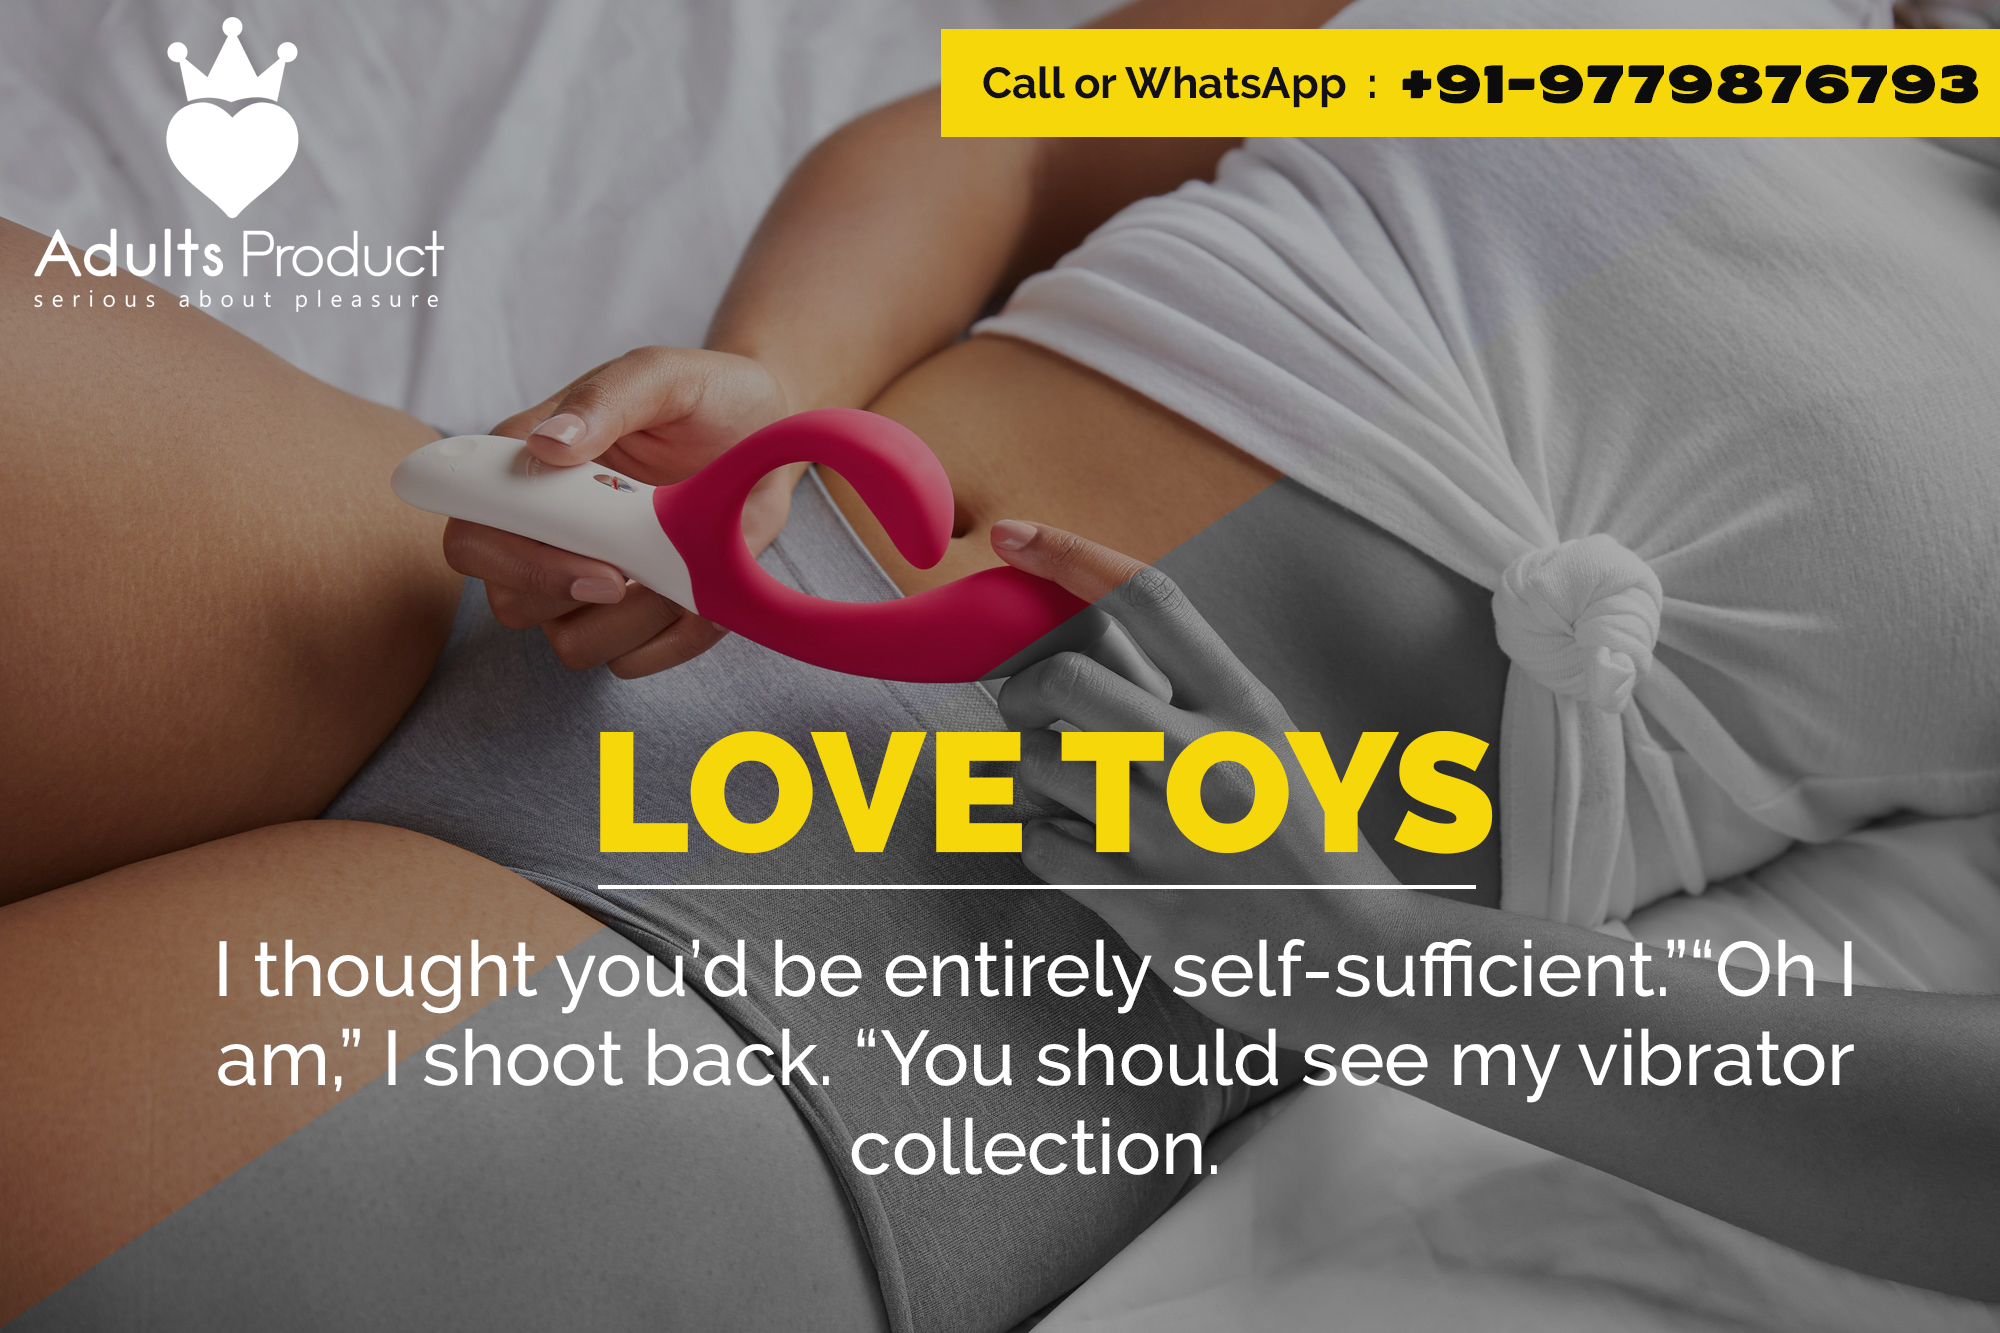 Take the 5 day challenge after purchasing the vibrator! 2